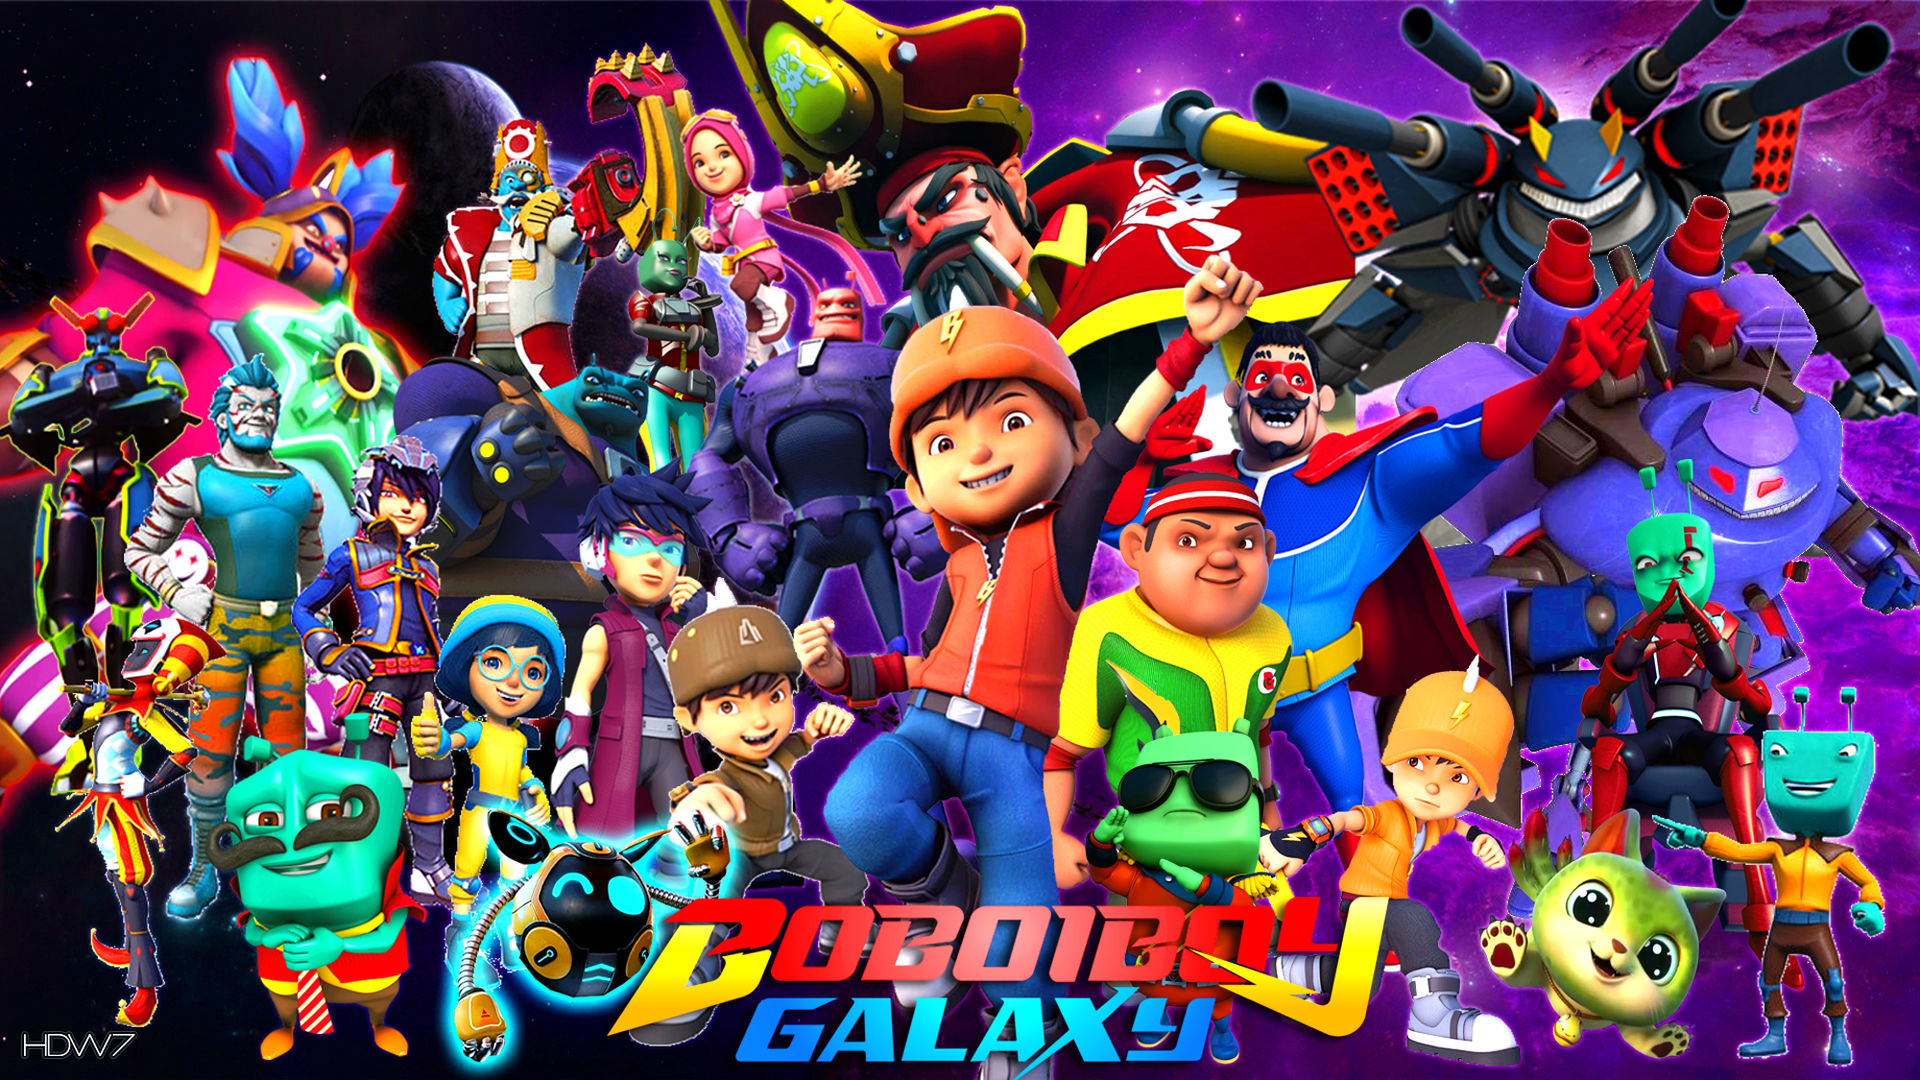 Boboiboy Galaxy Wallpaper